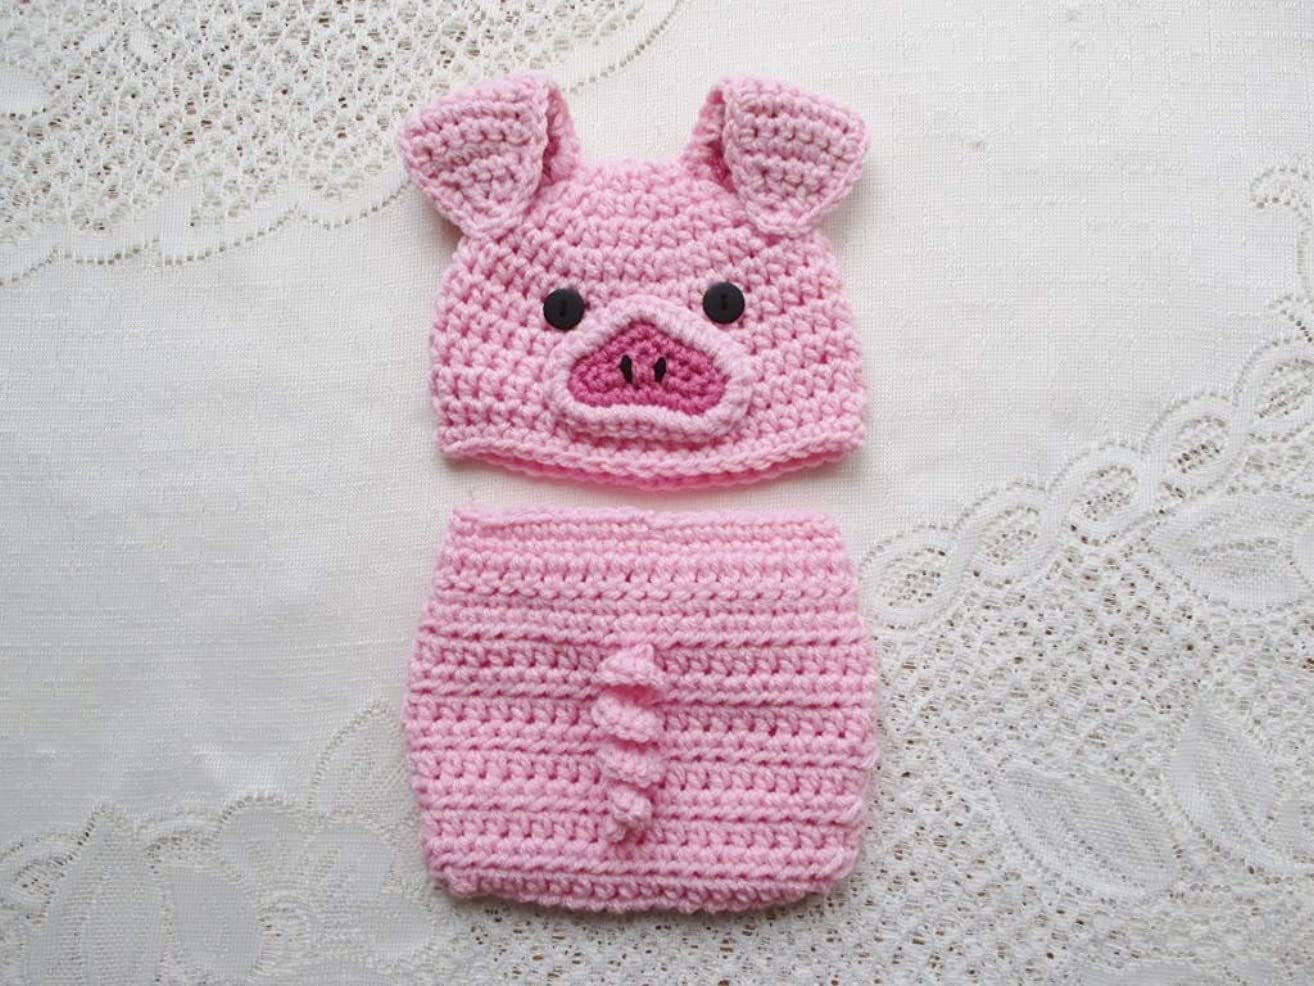 Crochet Baby Pig Hat and Diaper Cover Set - Photo Prop - Available in 0 to 24 Months